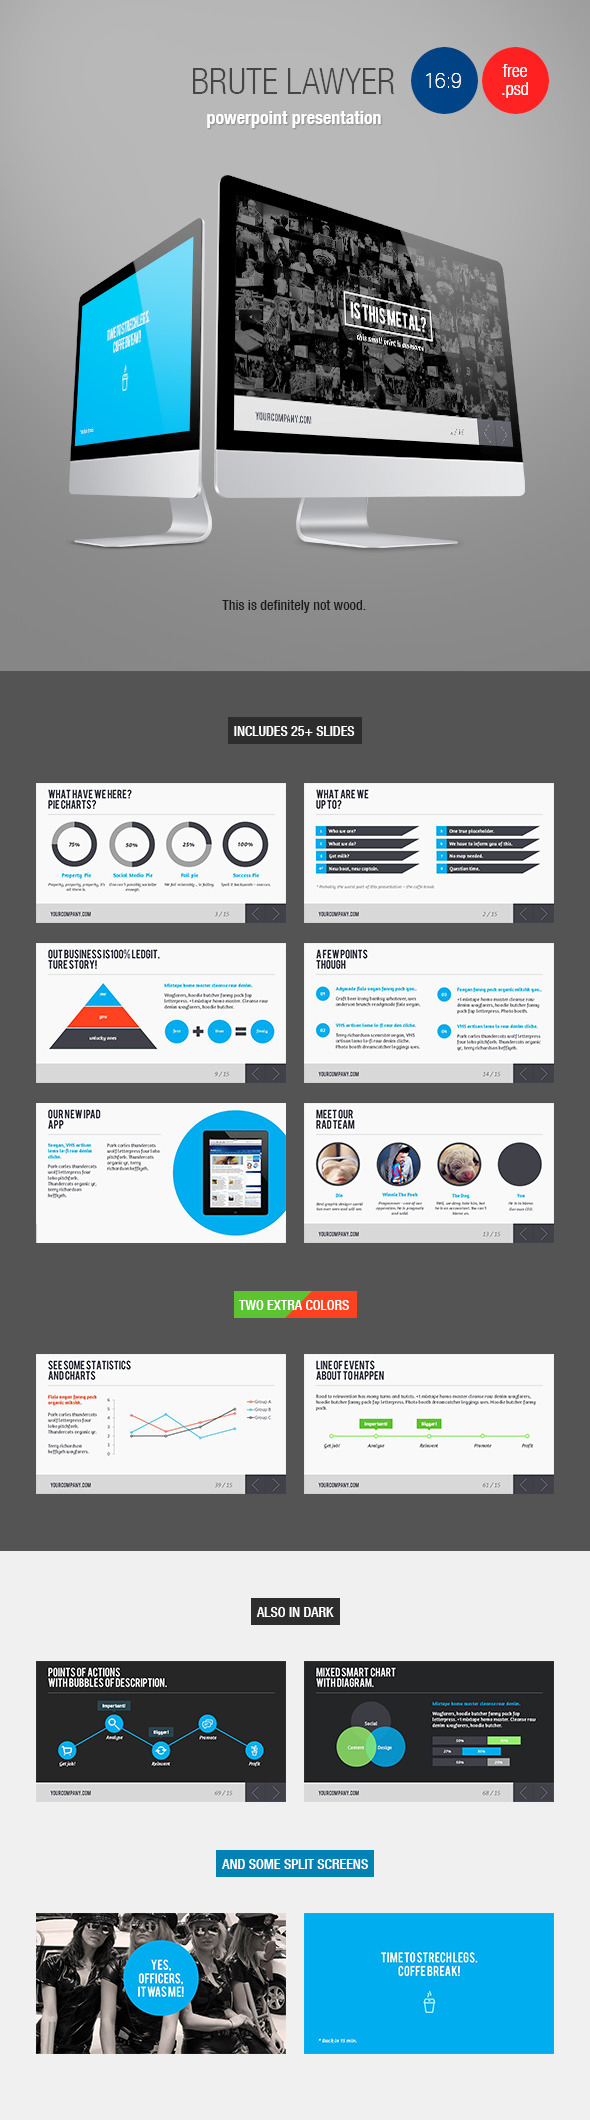 Brute Lawyer - Swiss Style PowerPoint Template